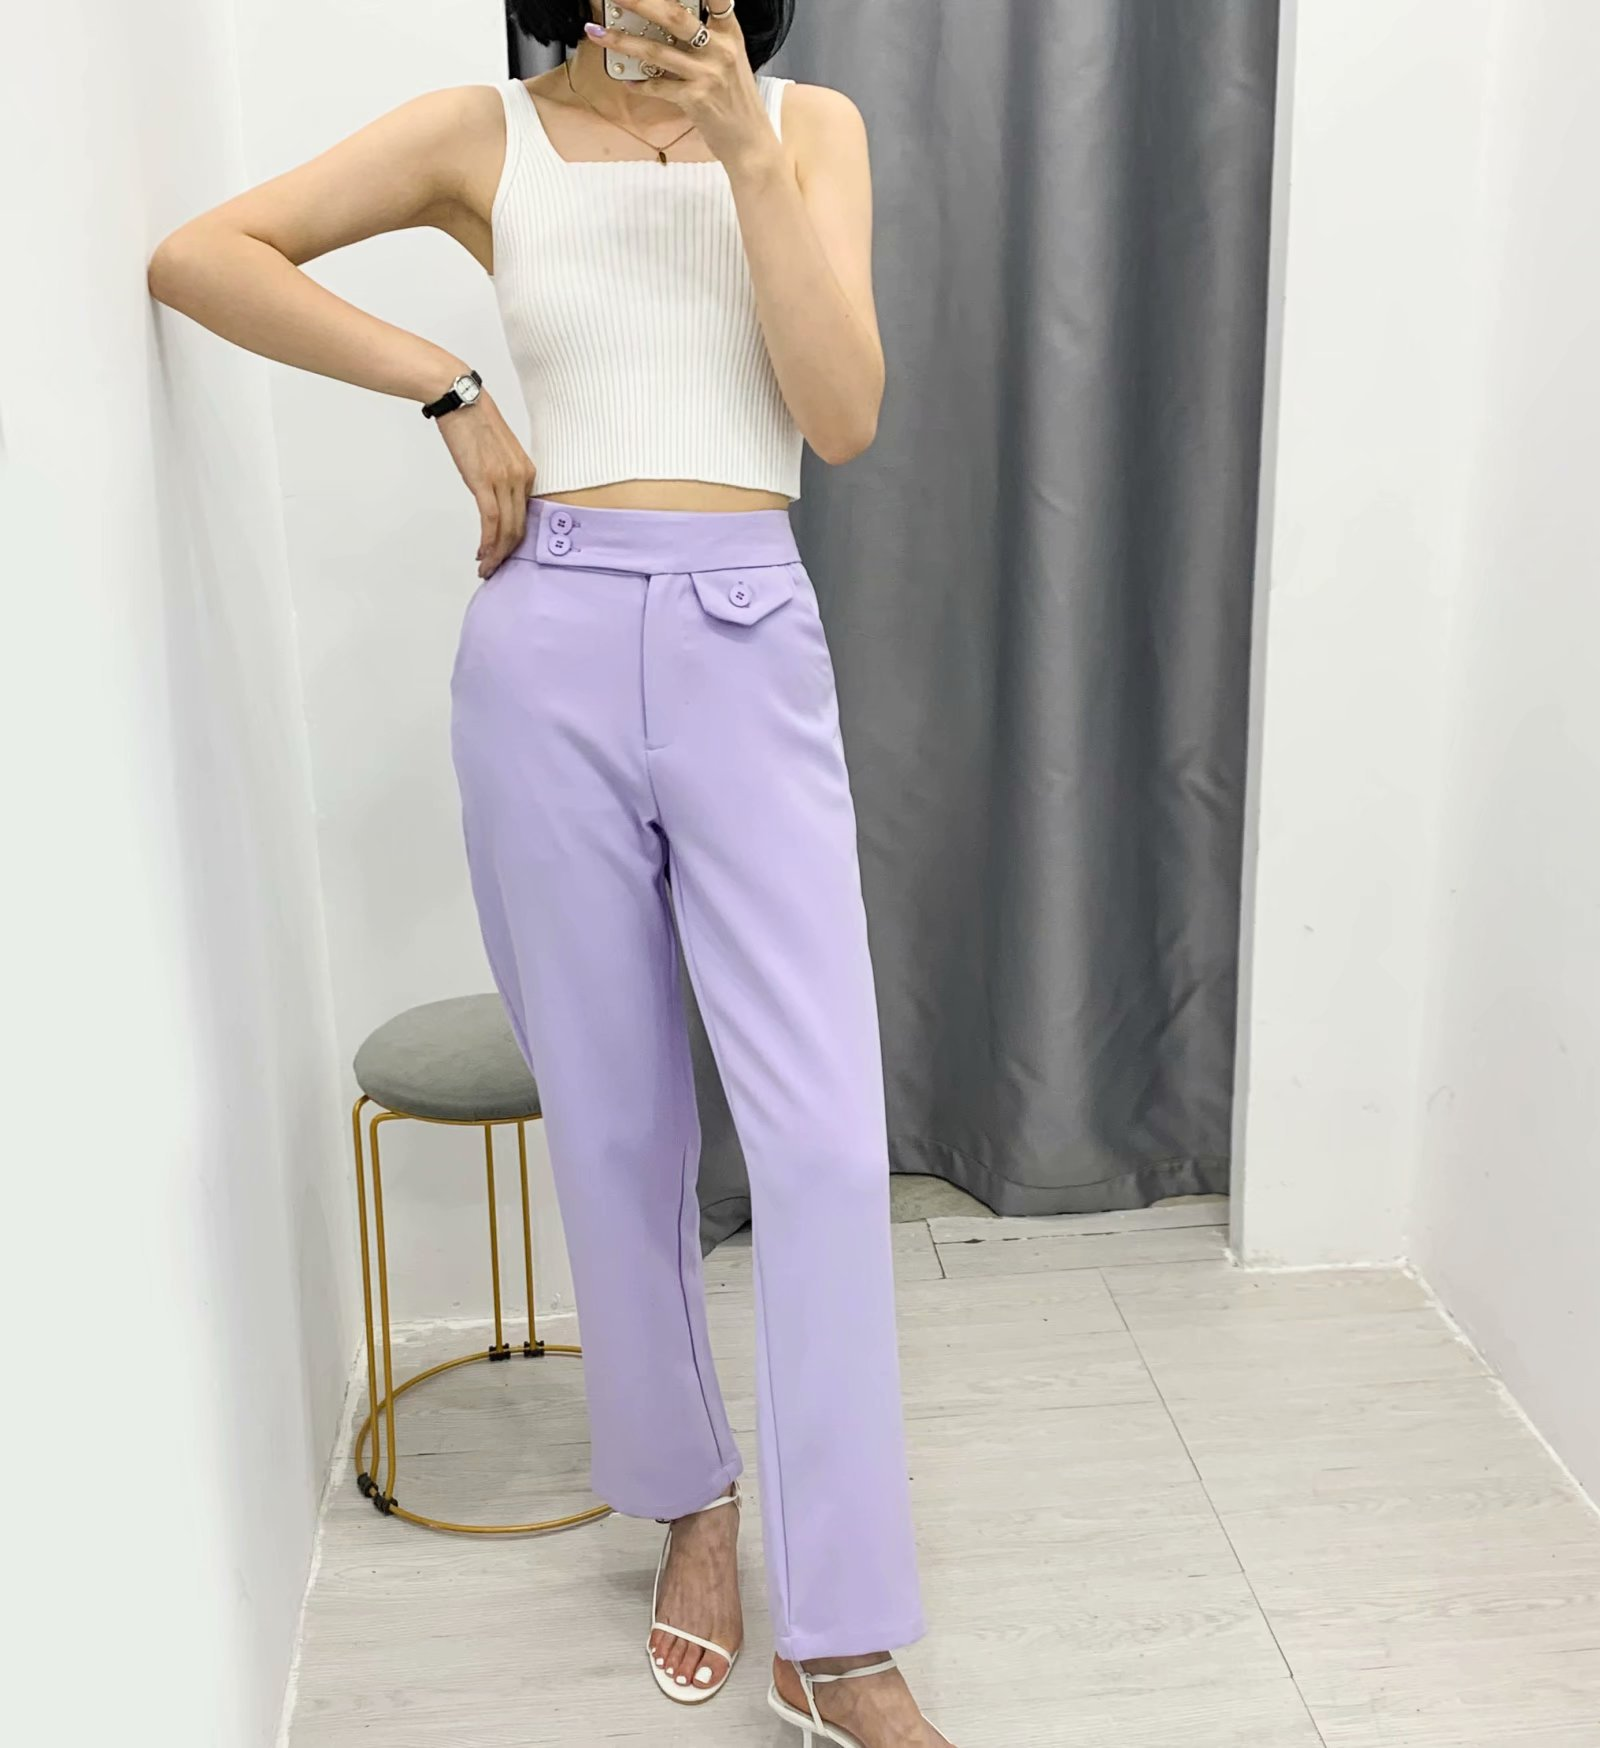 straight drape high waist slimming suit material wideleg pants casual trousers wholesale nihaojewelry NHAM236727